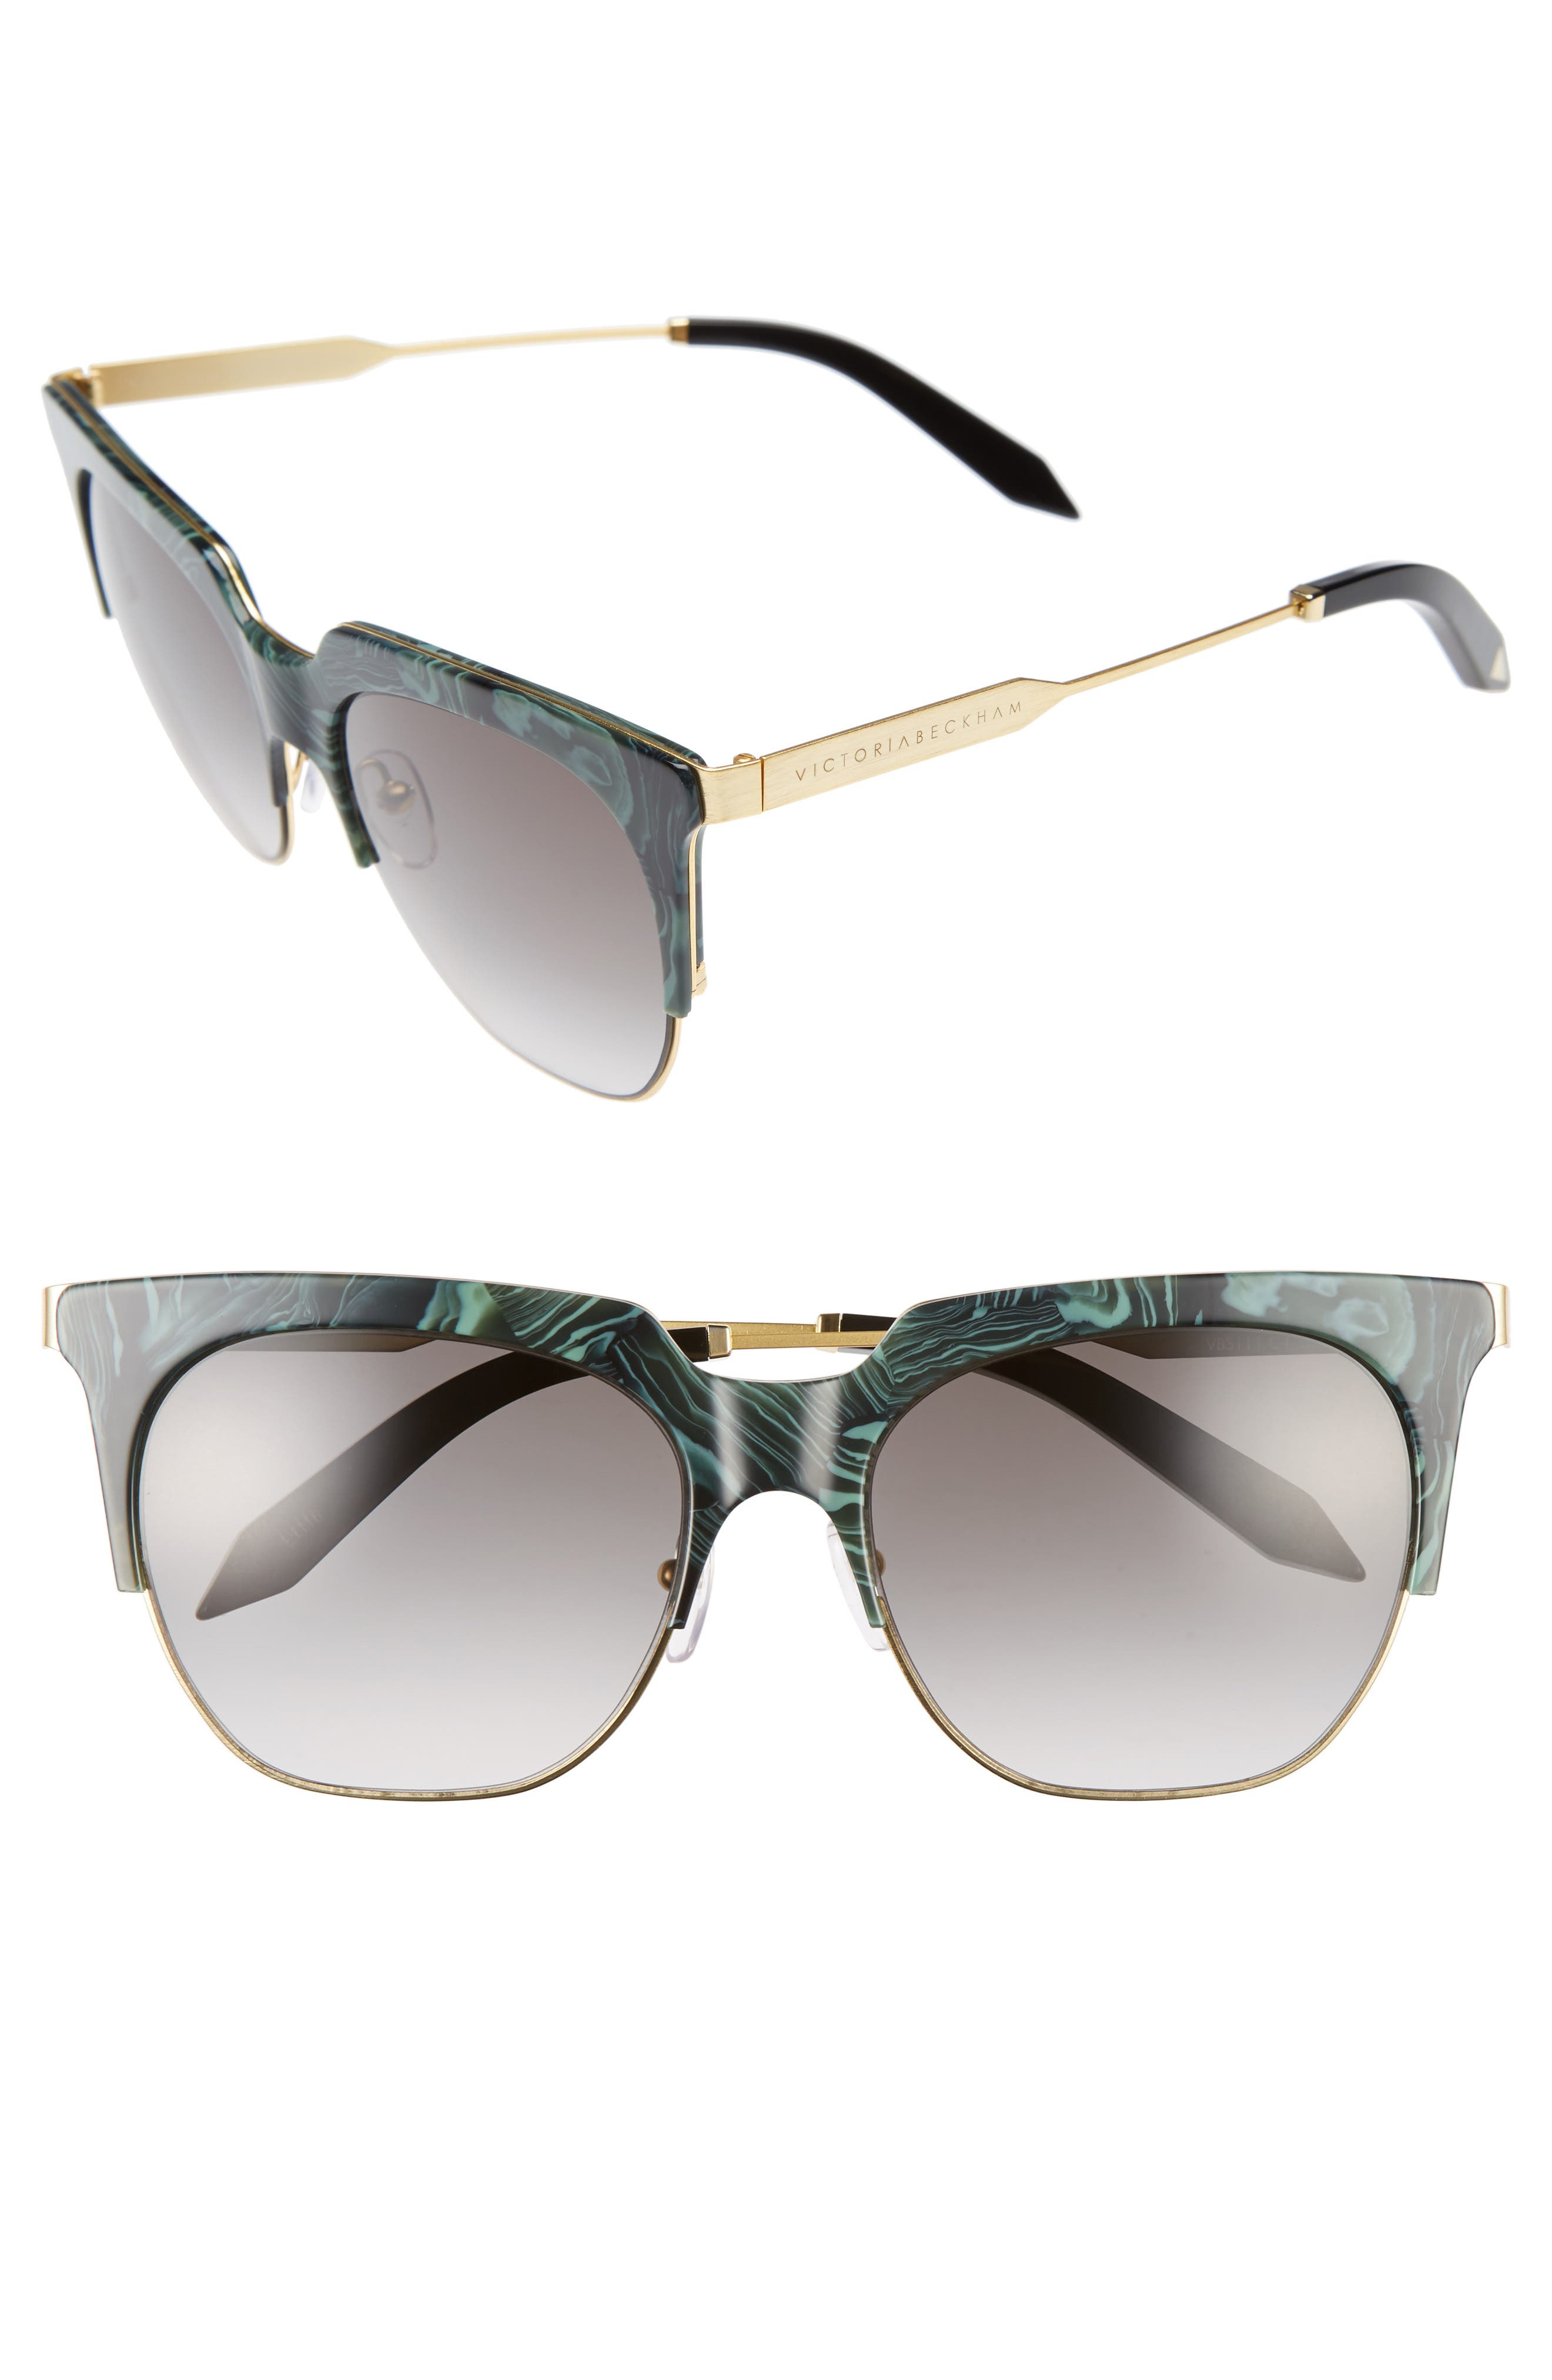 Victoria Beckham Layered Combination 57Mm Square Sunglasses -